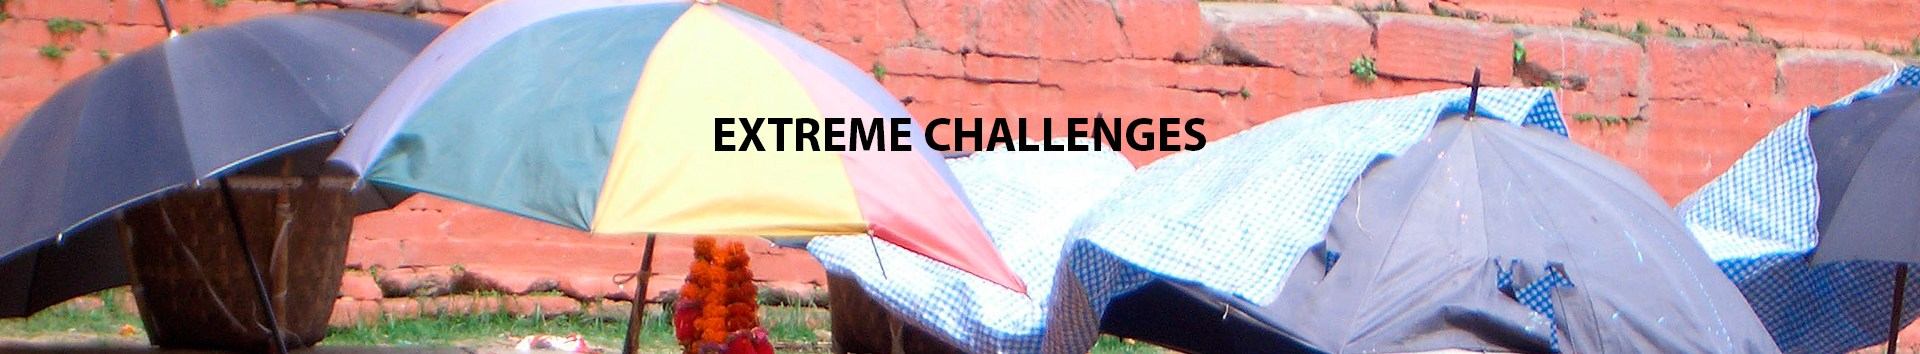 extreme challenges